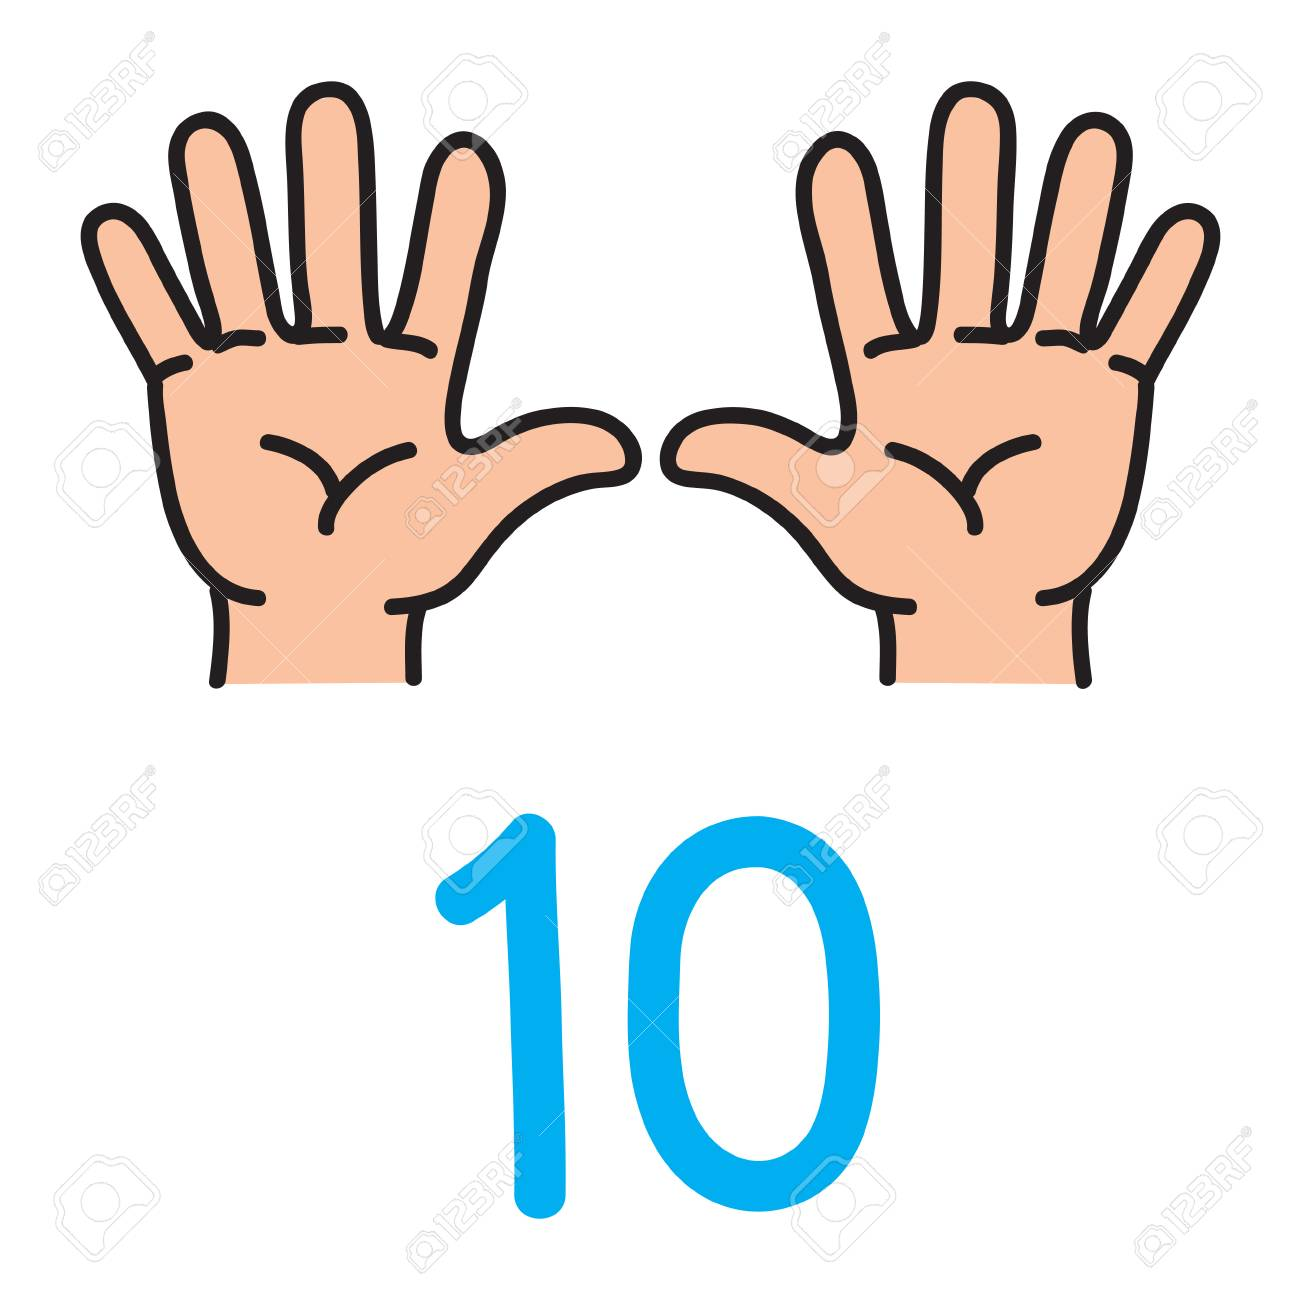 Kids hand showing the number ten hand sign. - 90922735